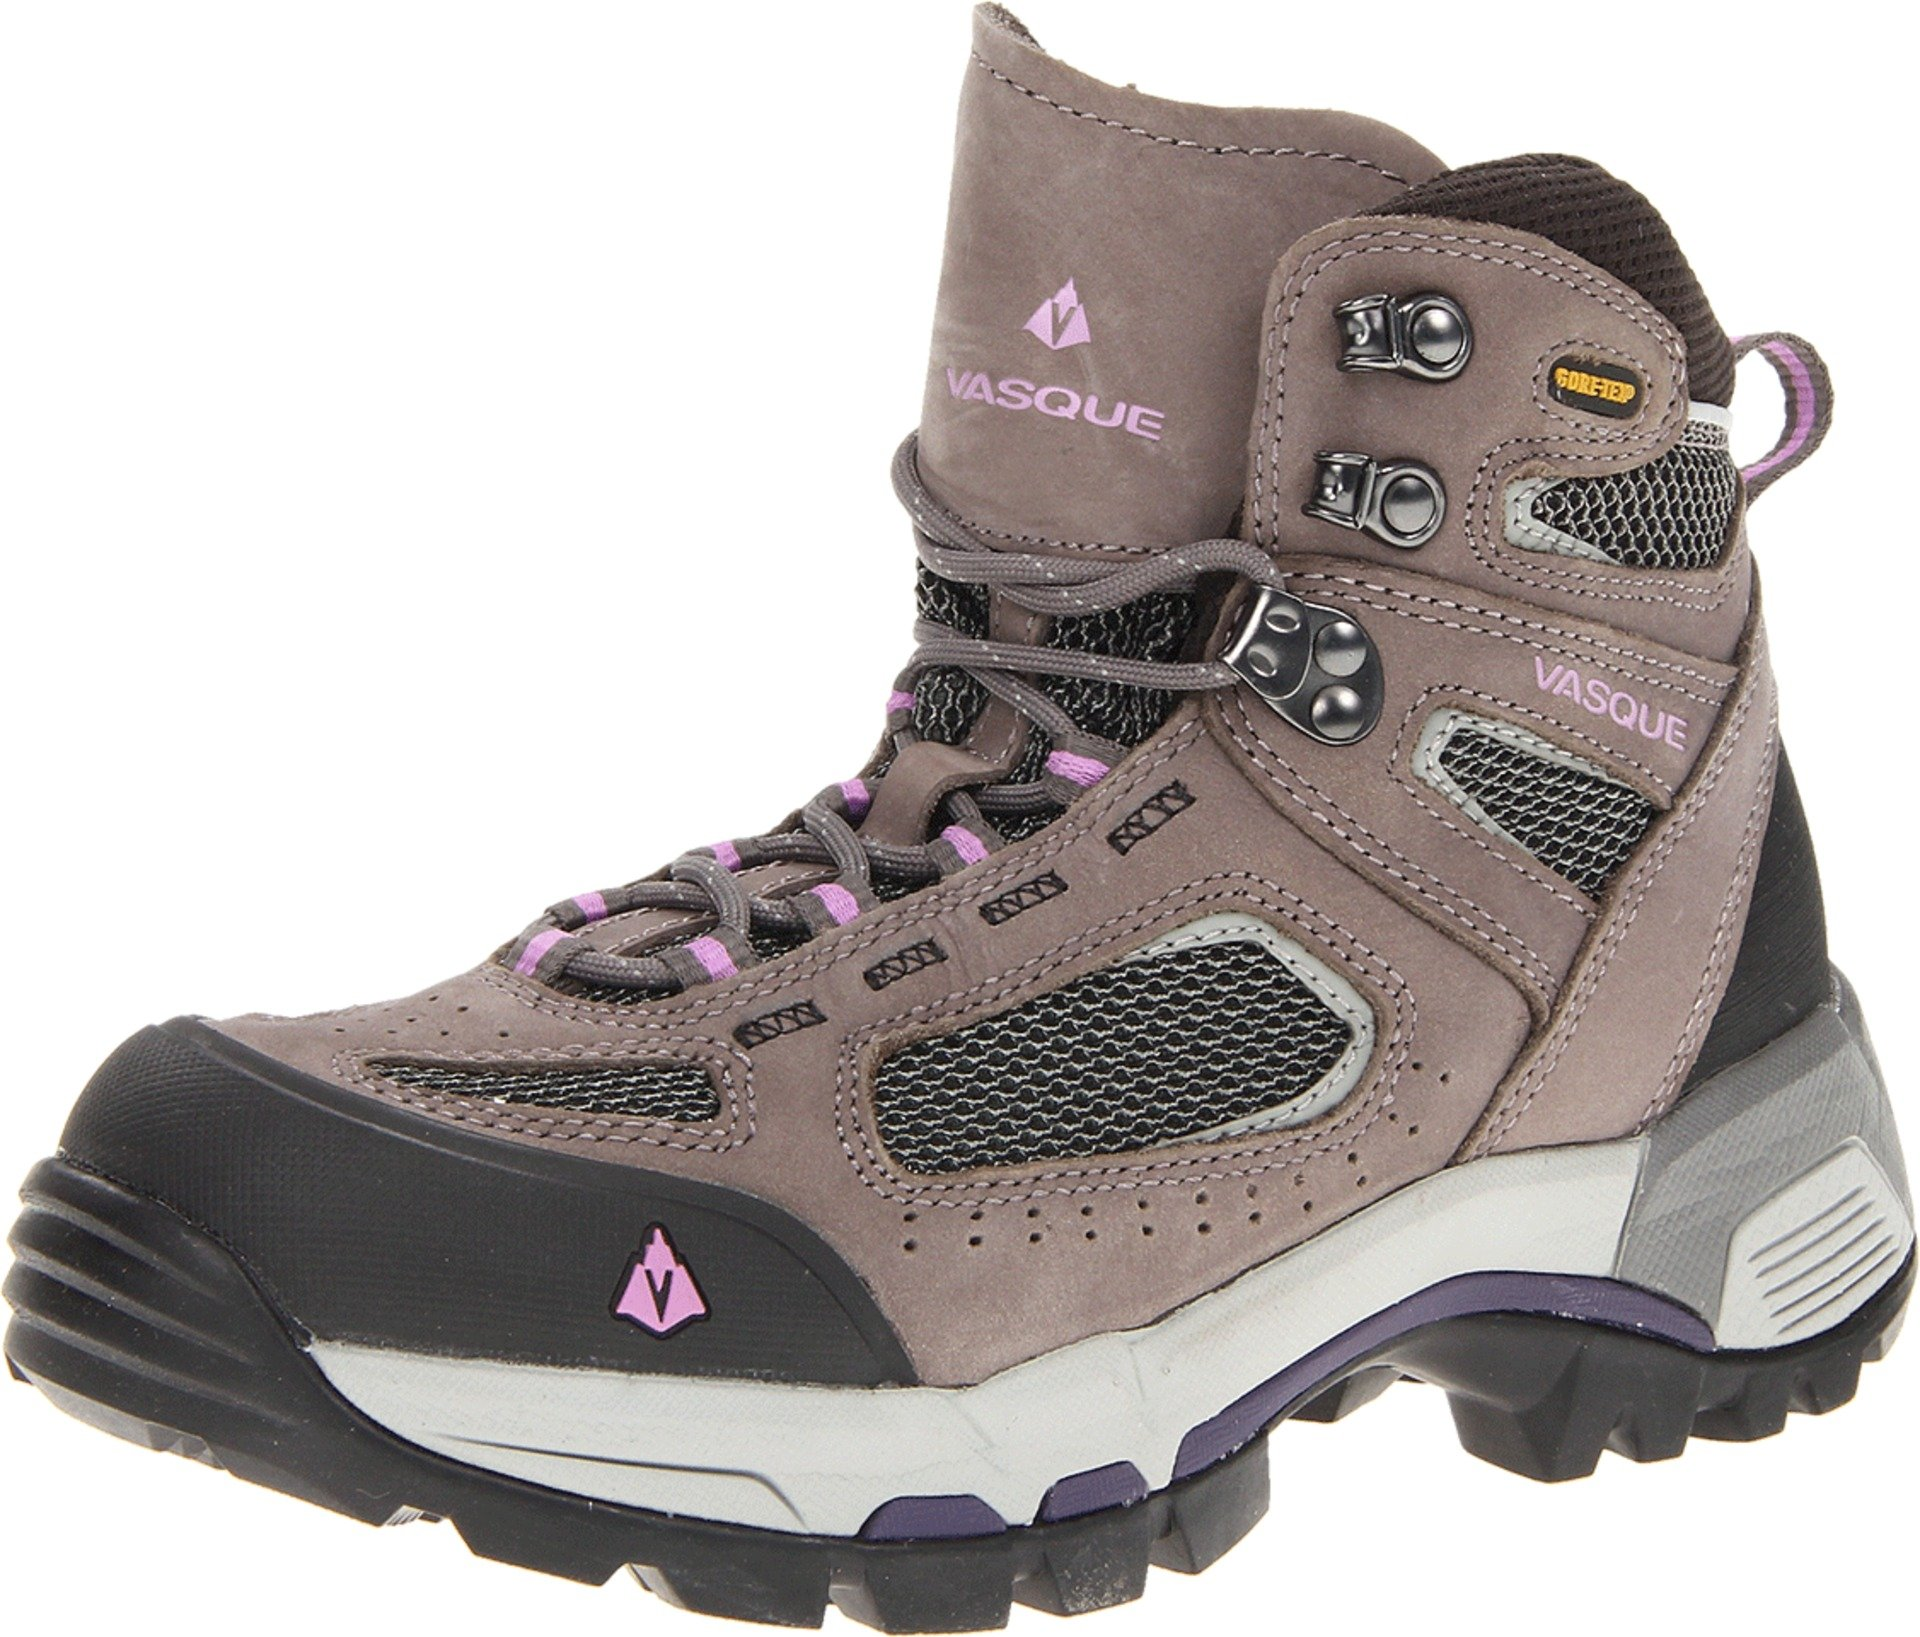 Vasque Women's Breeze 2.0 Gore-Tex Hiking Boot, Gargoyle/African Violet,7.5 M US